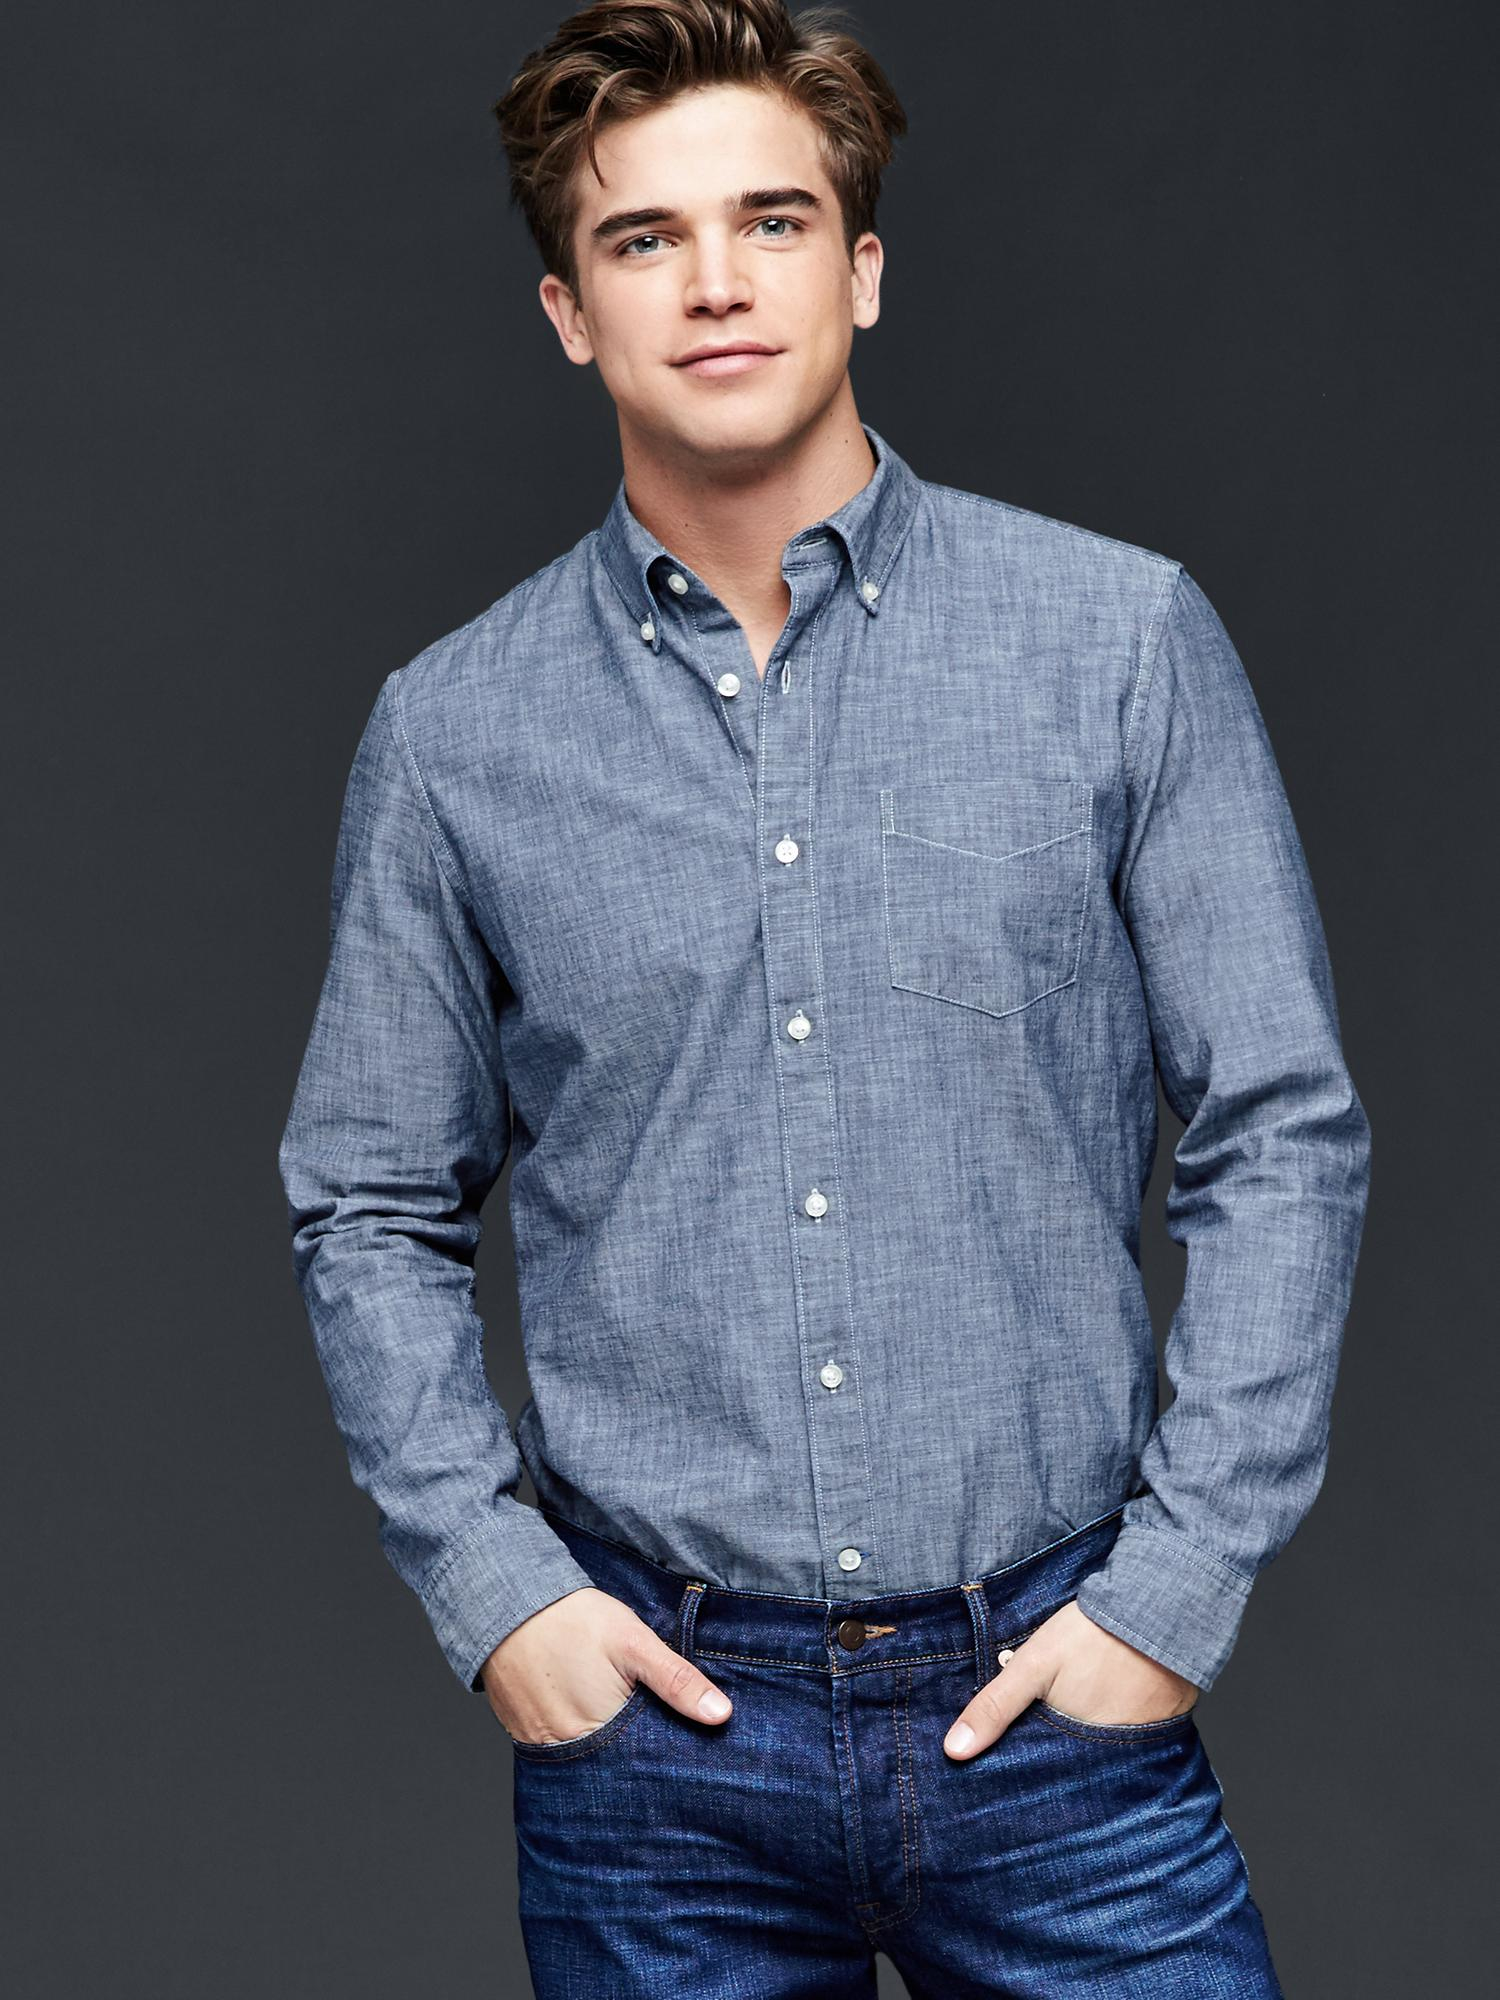 10 Best Chambray Shirts For Men. Posted in GEAR GUIDES, SHIRTS By Beau Hayhoe. If there's a modern answer to past style classics like the blue Oxford, it just might be the chambray shirt. Pair it with some slim Levi's jeans and dark brown boots for your .